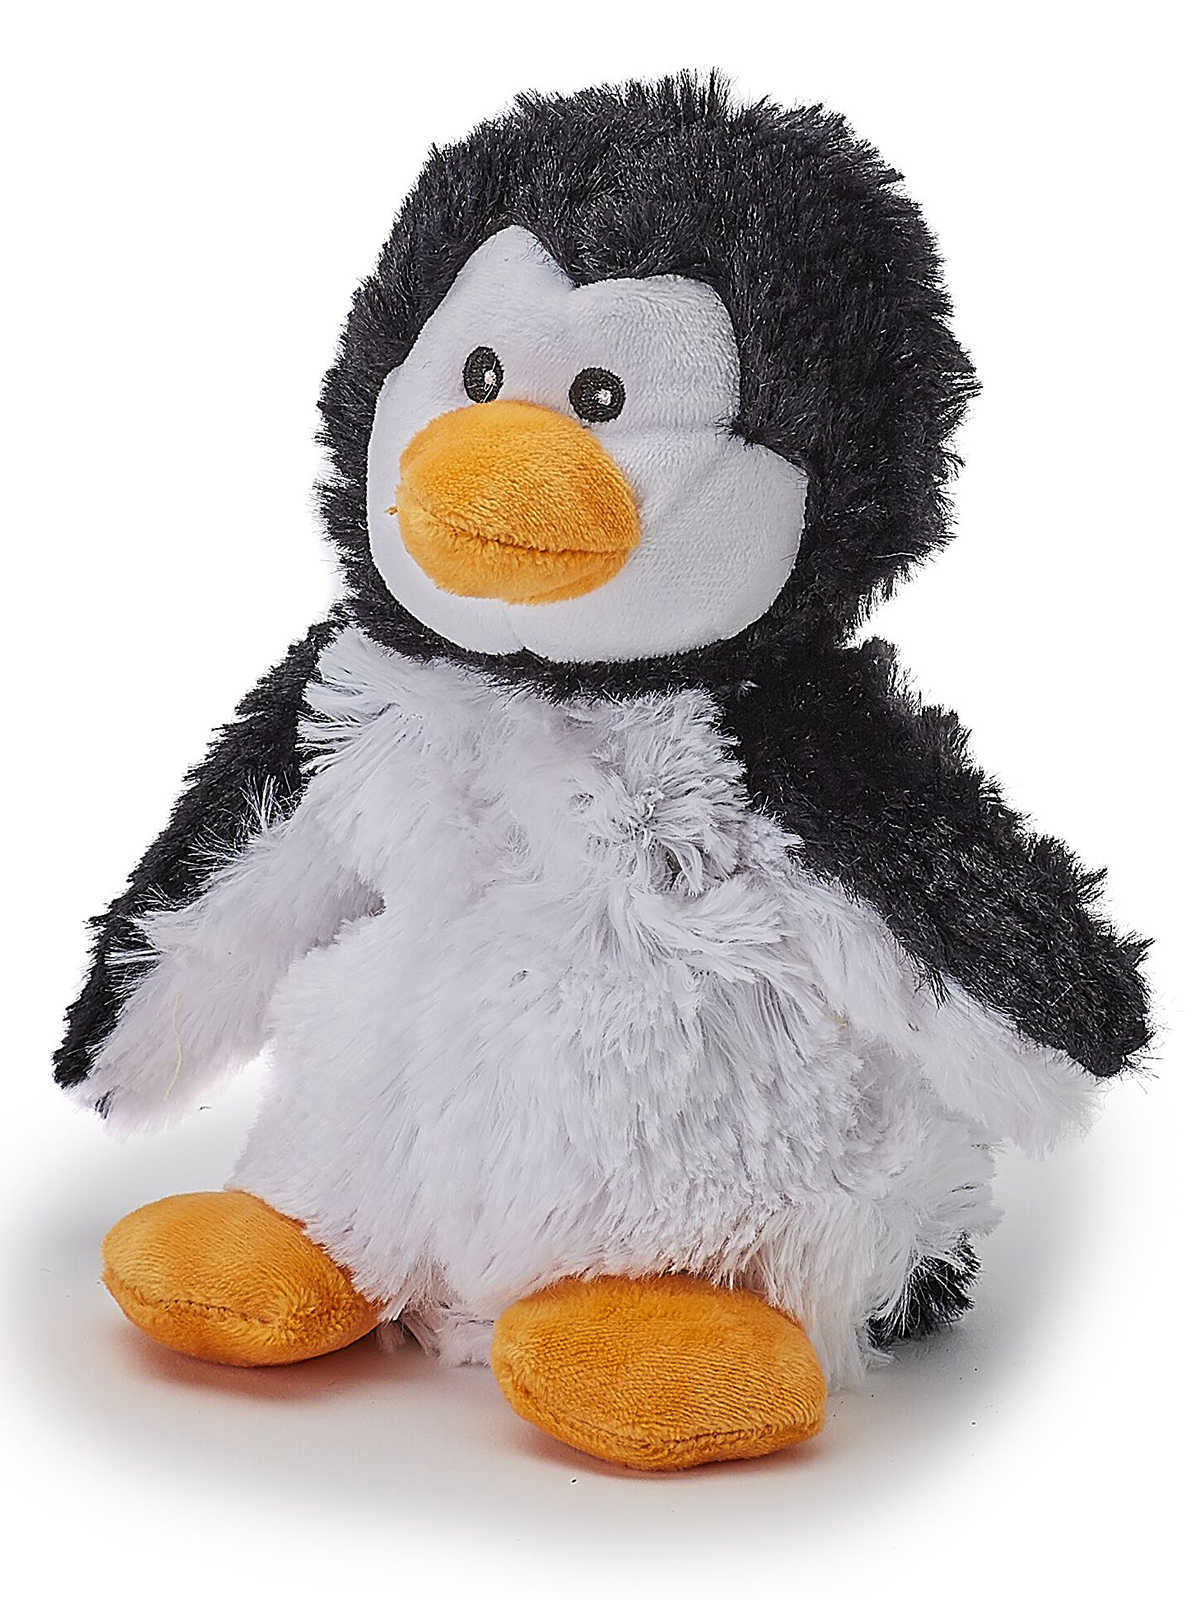 Пинкл (Pinkl) | Игрушка-грелка Junior Пингвиненок | Intelex Warmies Cozy Plush Junior Penguin